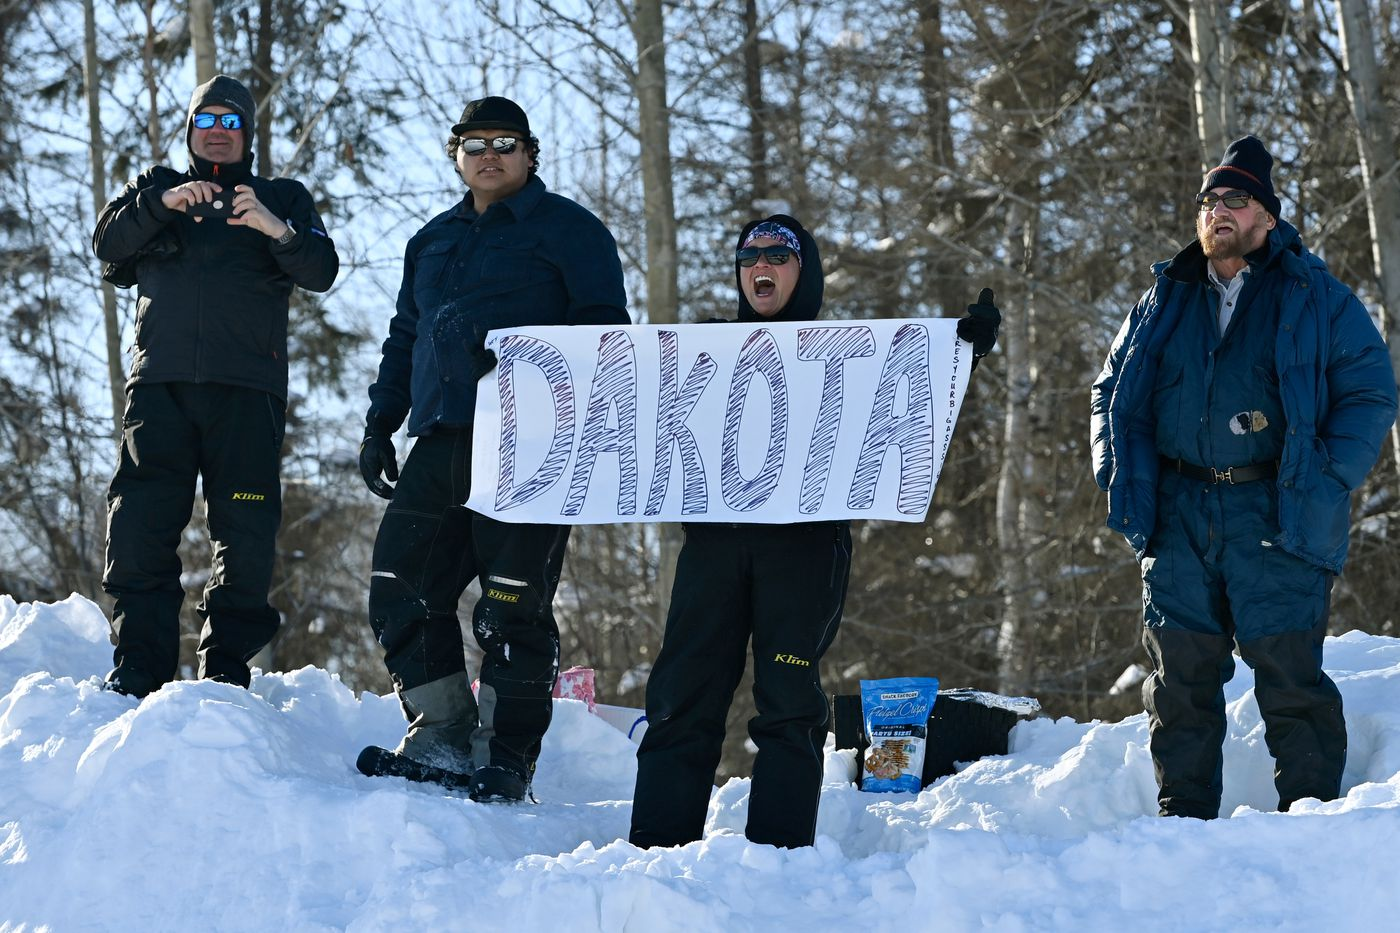 Supporters for Willow rookie Dakota Schlosser cheer from afar as he enters the starting chute. (Marc Lester / ADN)